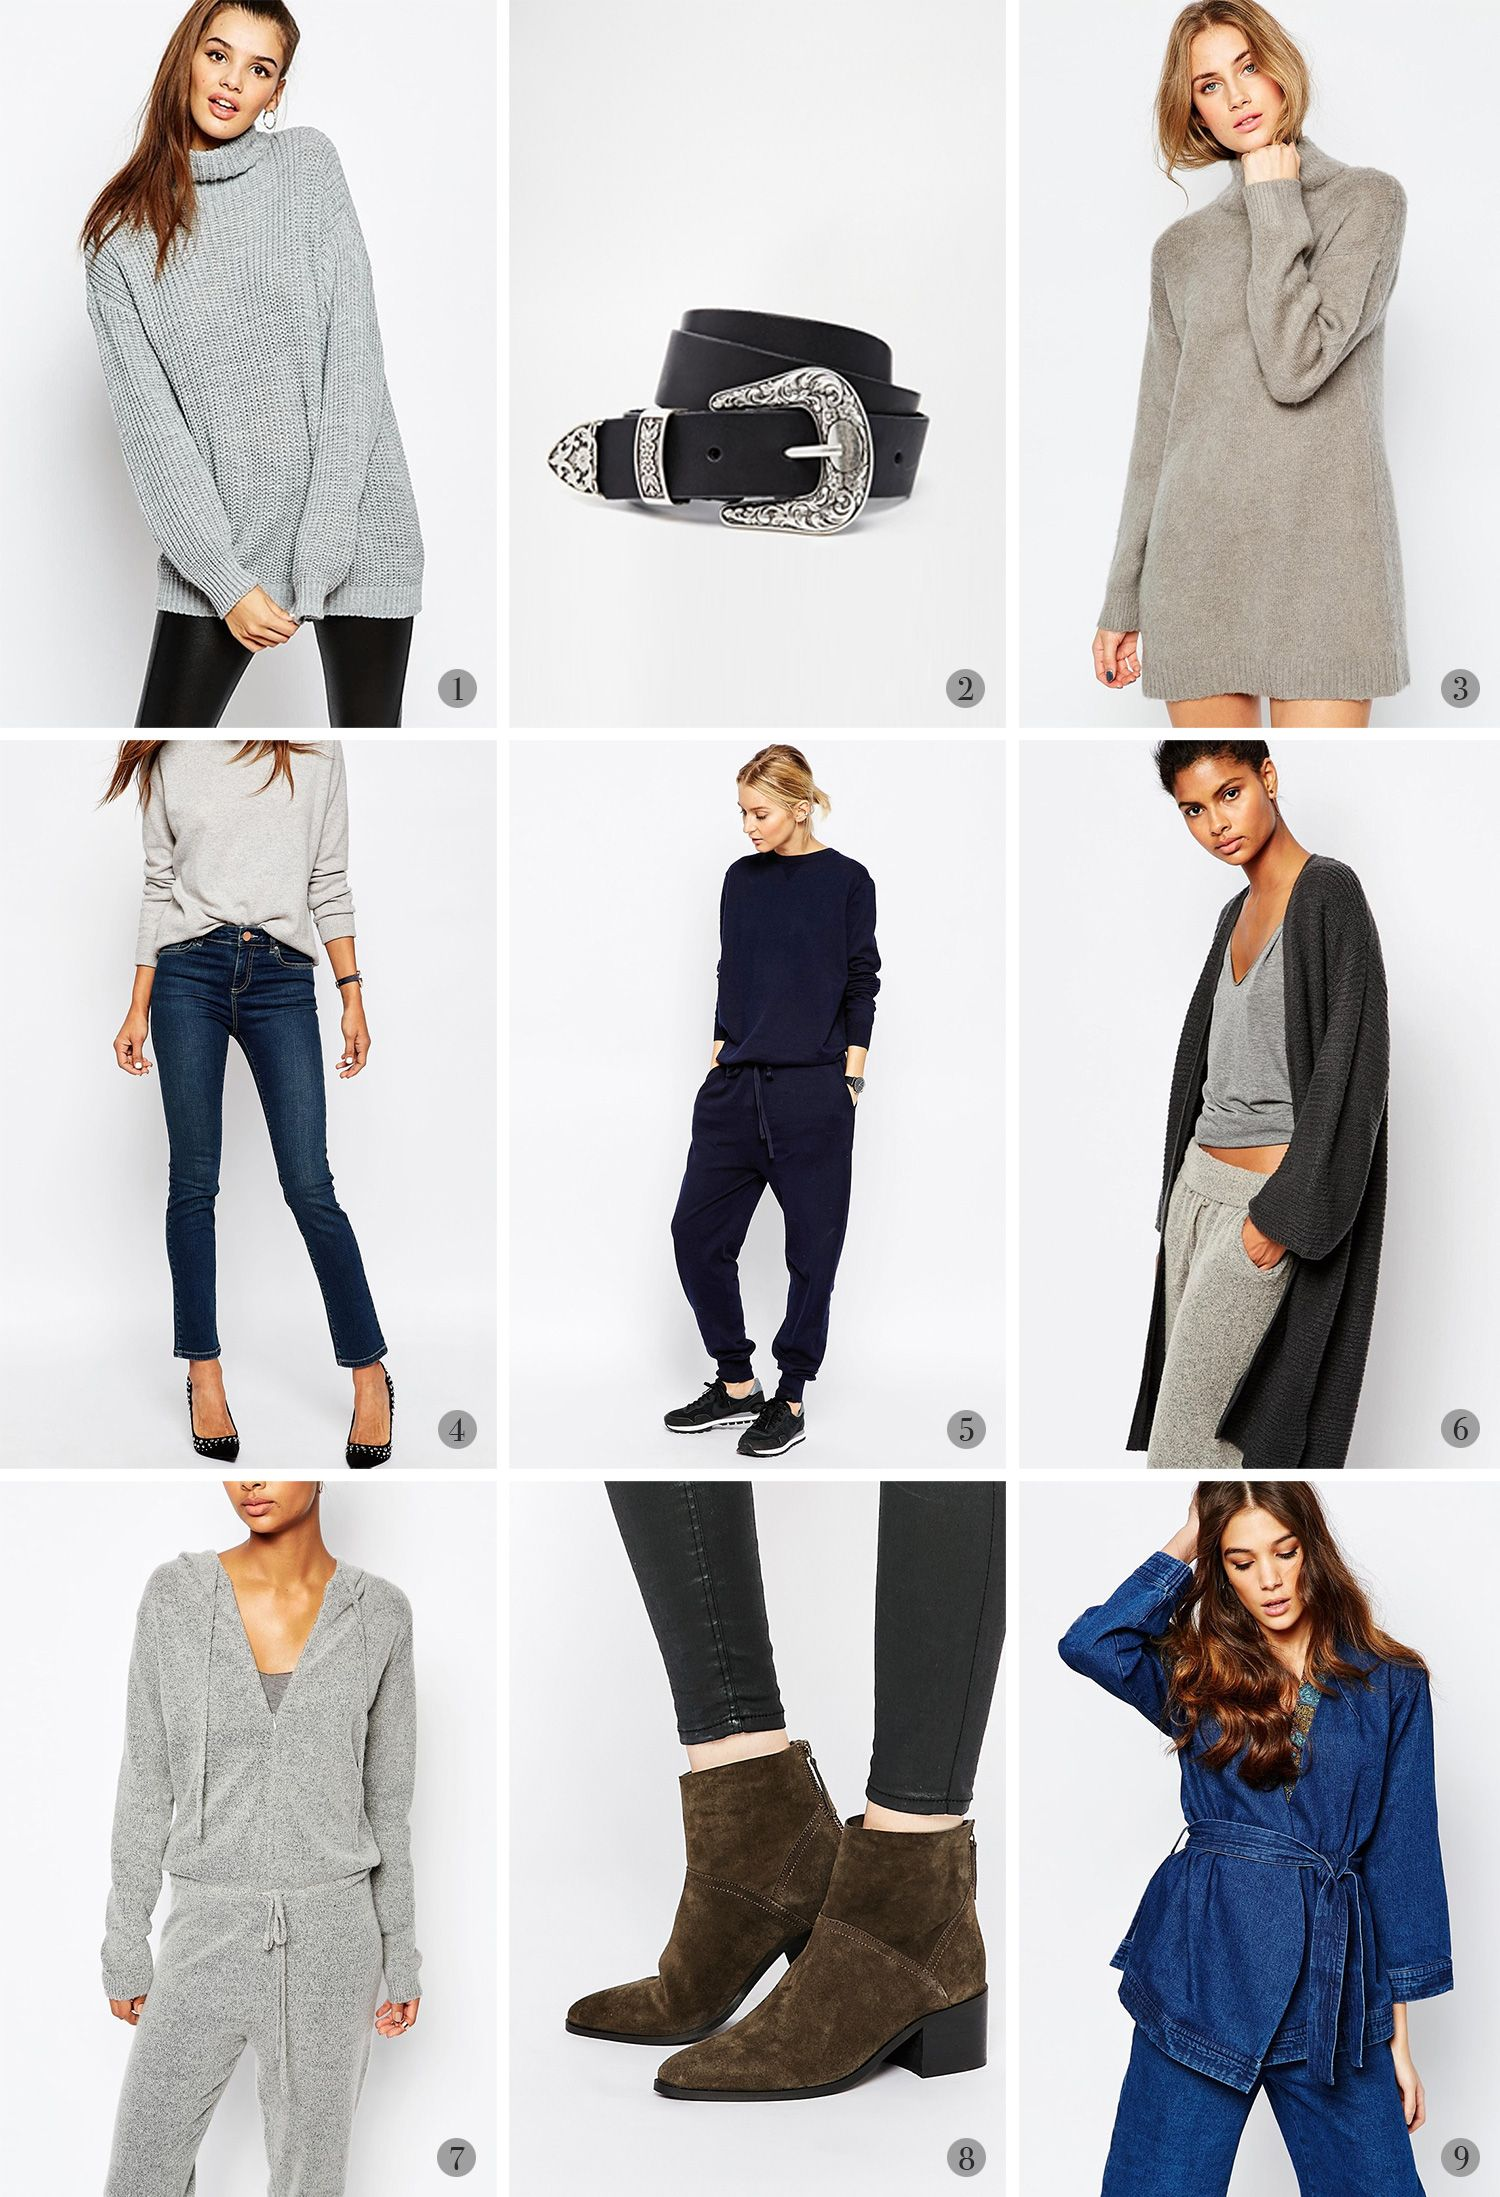 Asos saved items by Passions for Fashion  #Asos, #BilligtTøj, #Fashion, #HighStreetFashion, #HighStreetWebshop